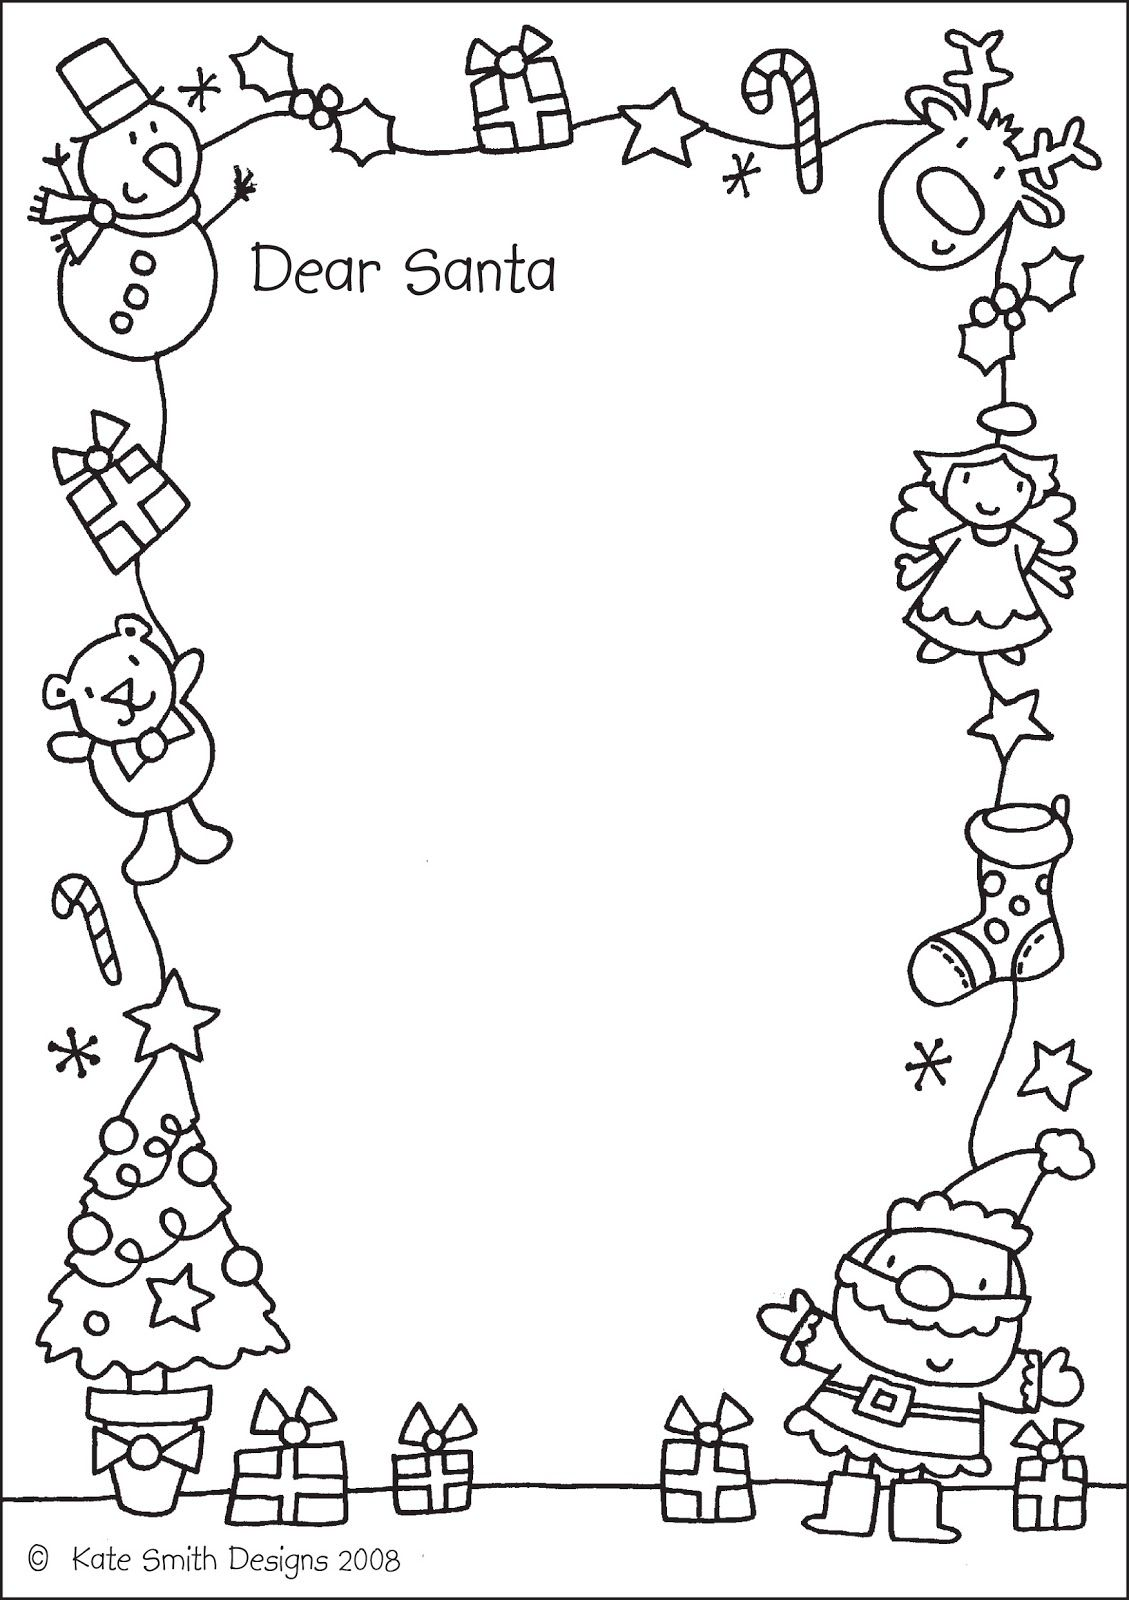 Christmas Coloring Letters With Dibujo De Navidad Bordes Pinterest Santa And